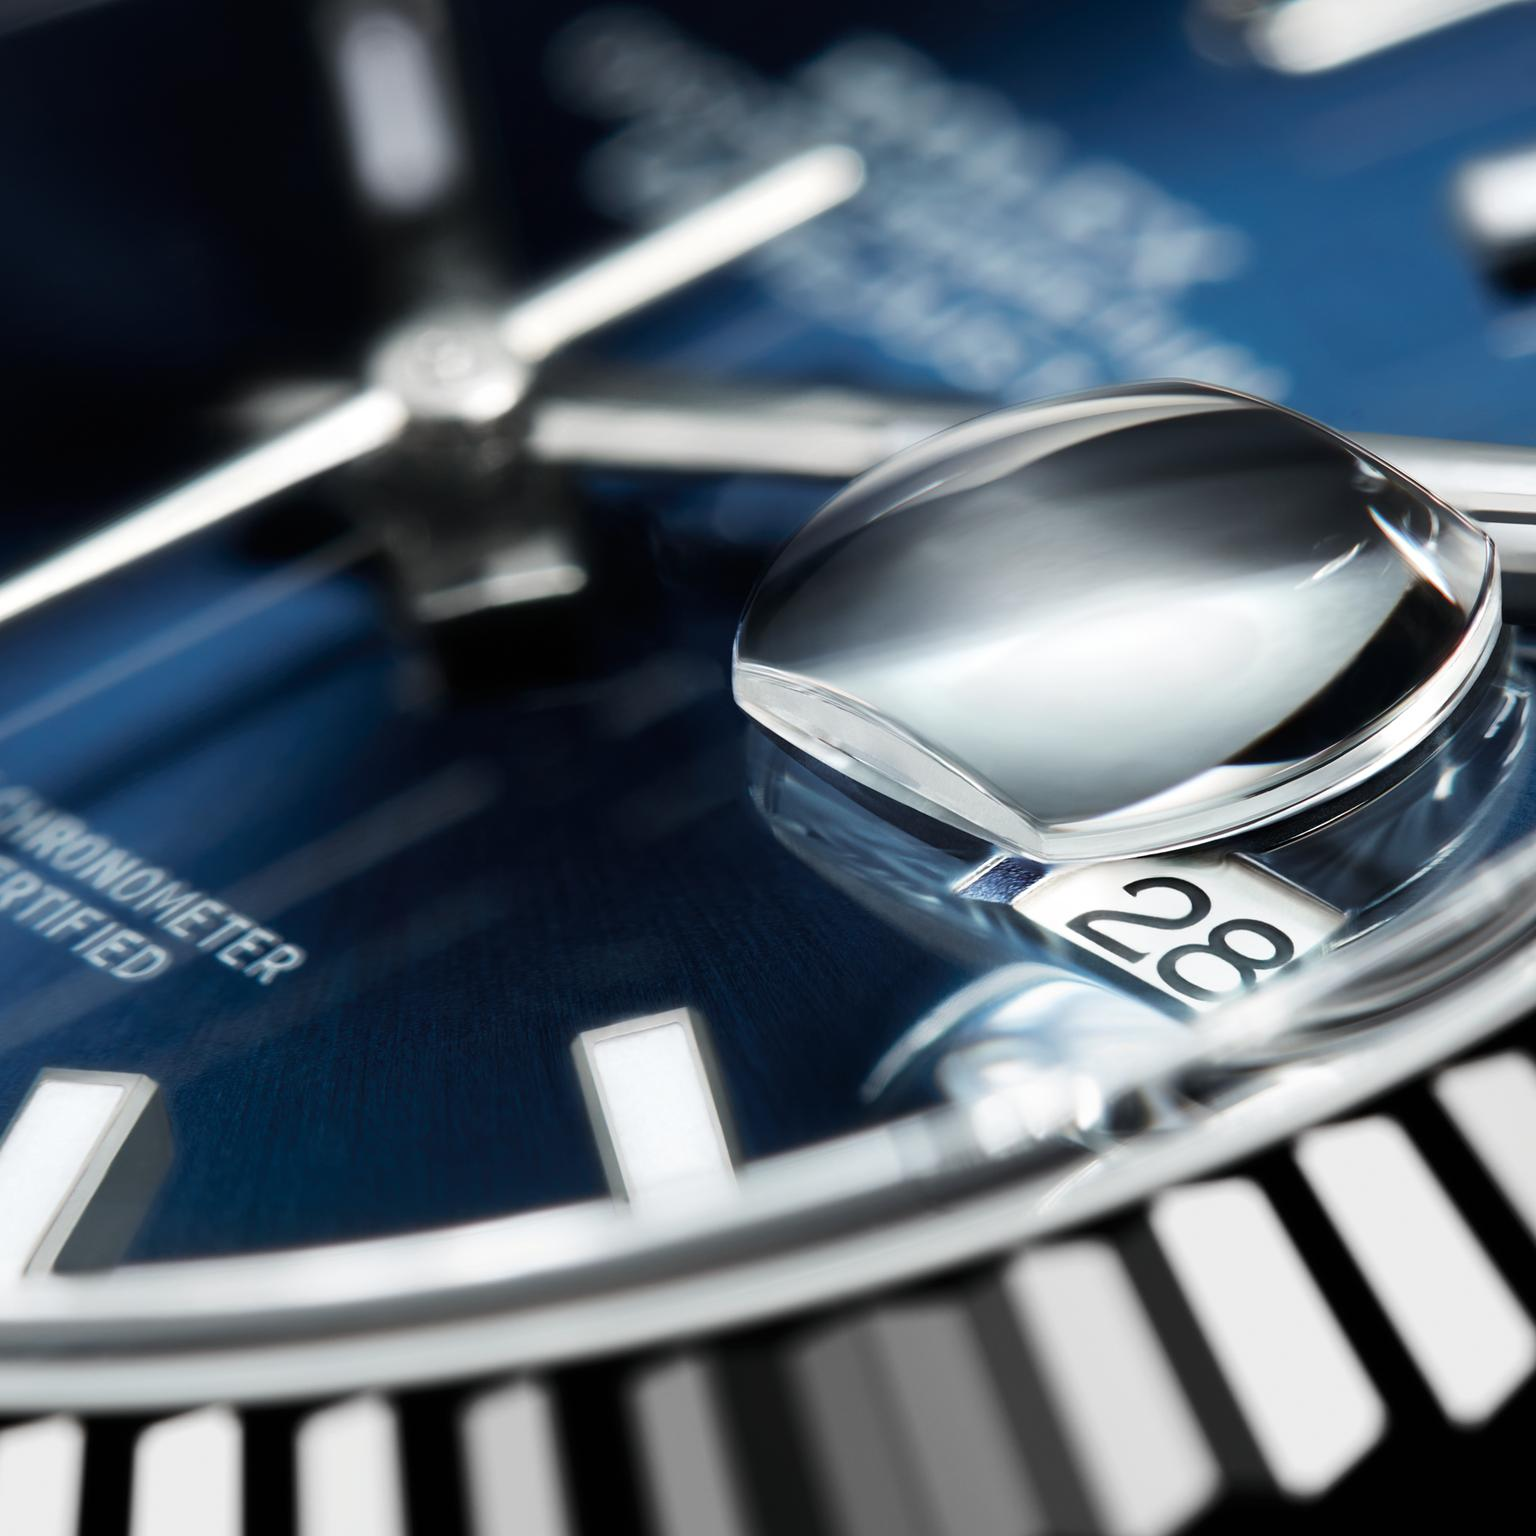 Rolex Datejust 41 watch in close up